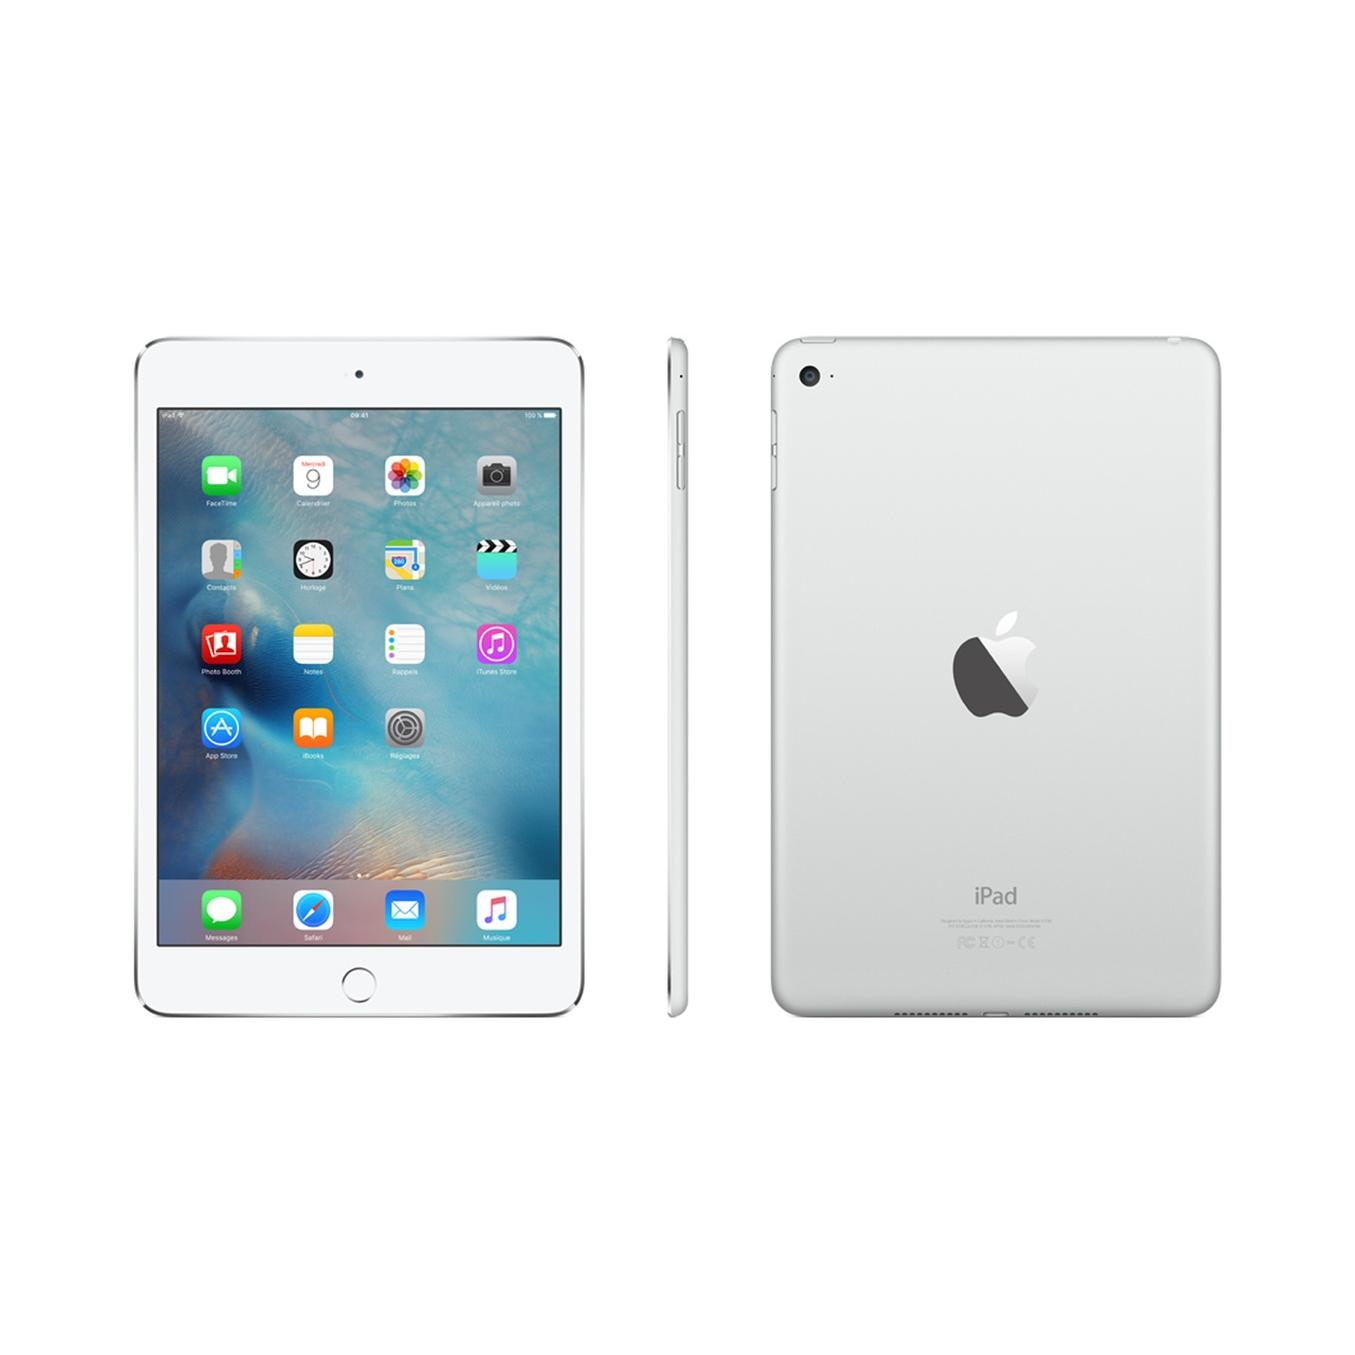 ipad mini 4 64gb lte wlan silber ohne vertrag. Black Bedroom Furniture Sets. Home Design Ideas